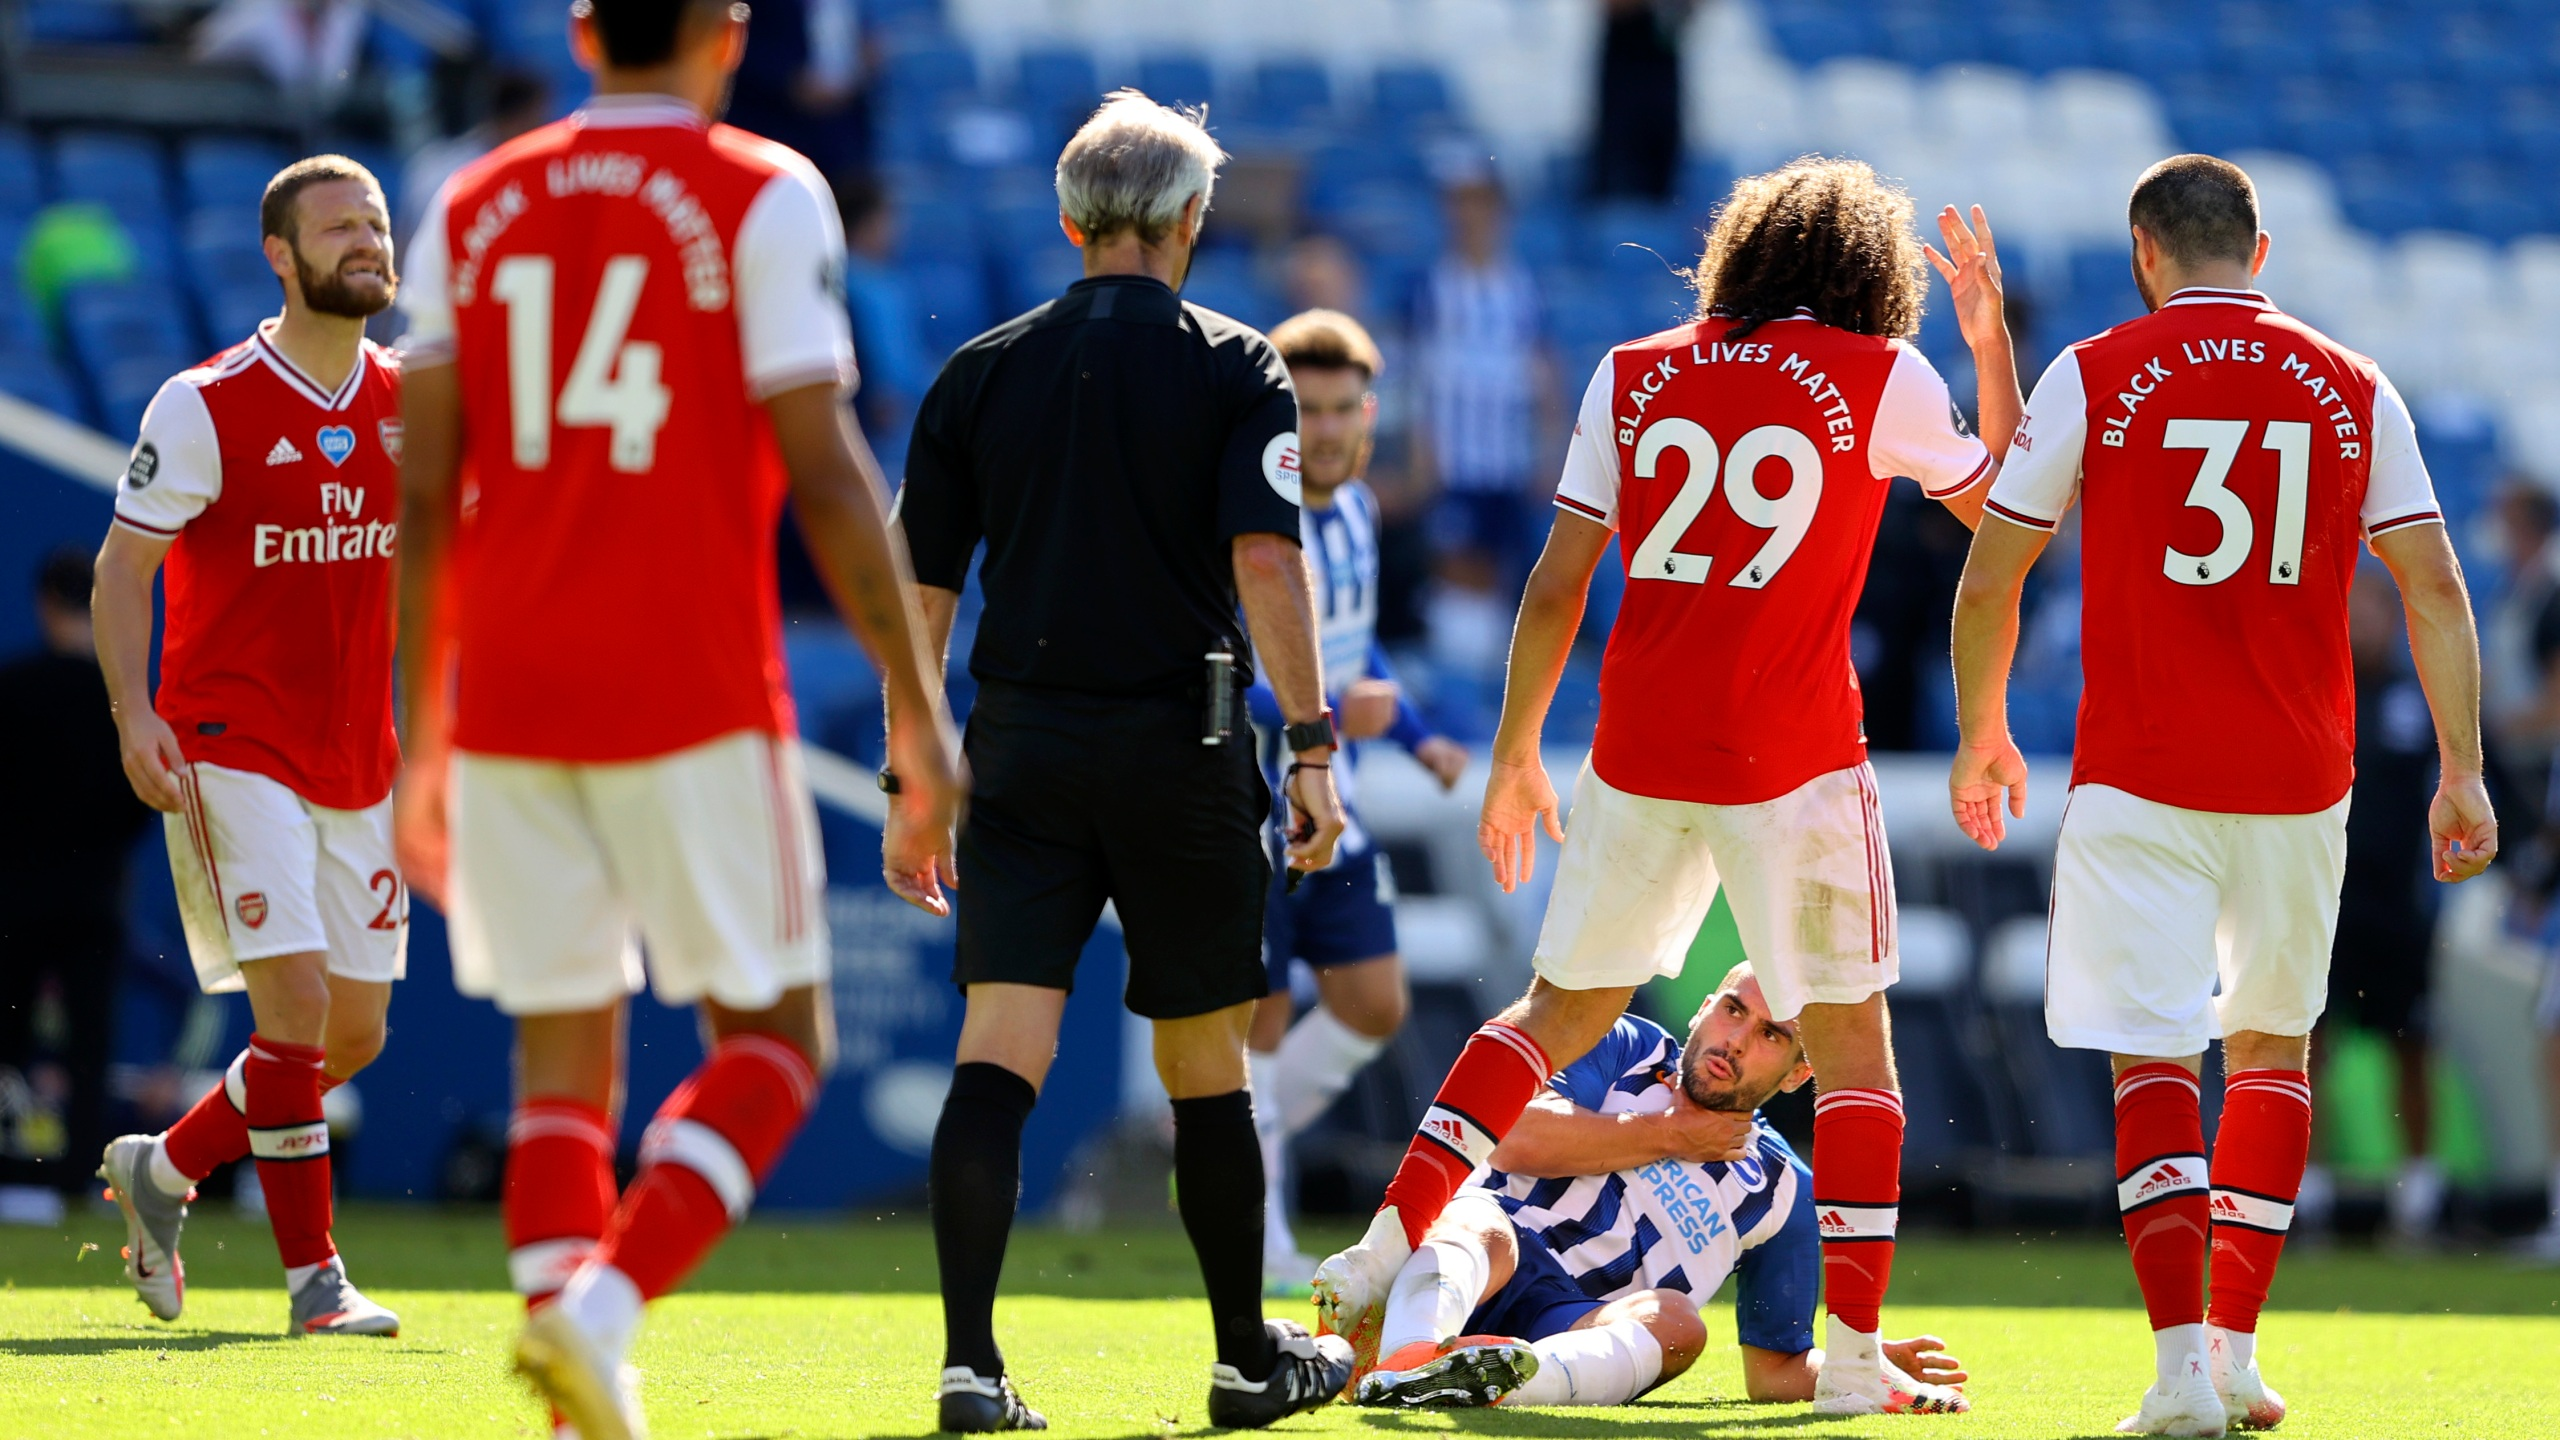 Another Loss Another Injury Arsenal Struggles On Pl Return